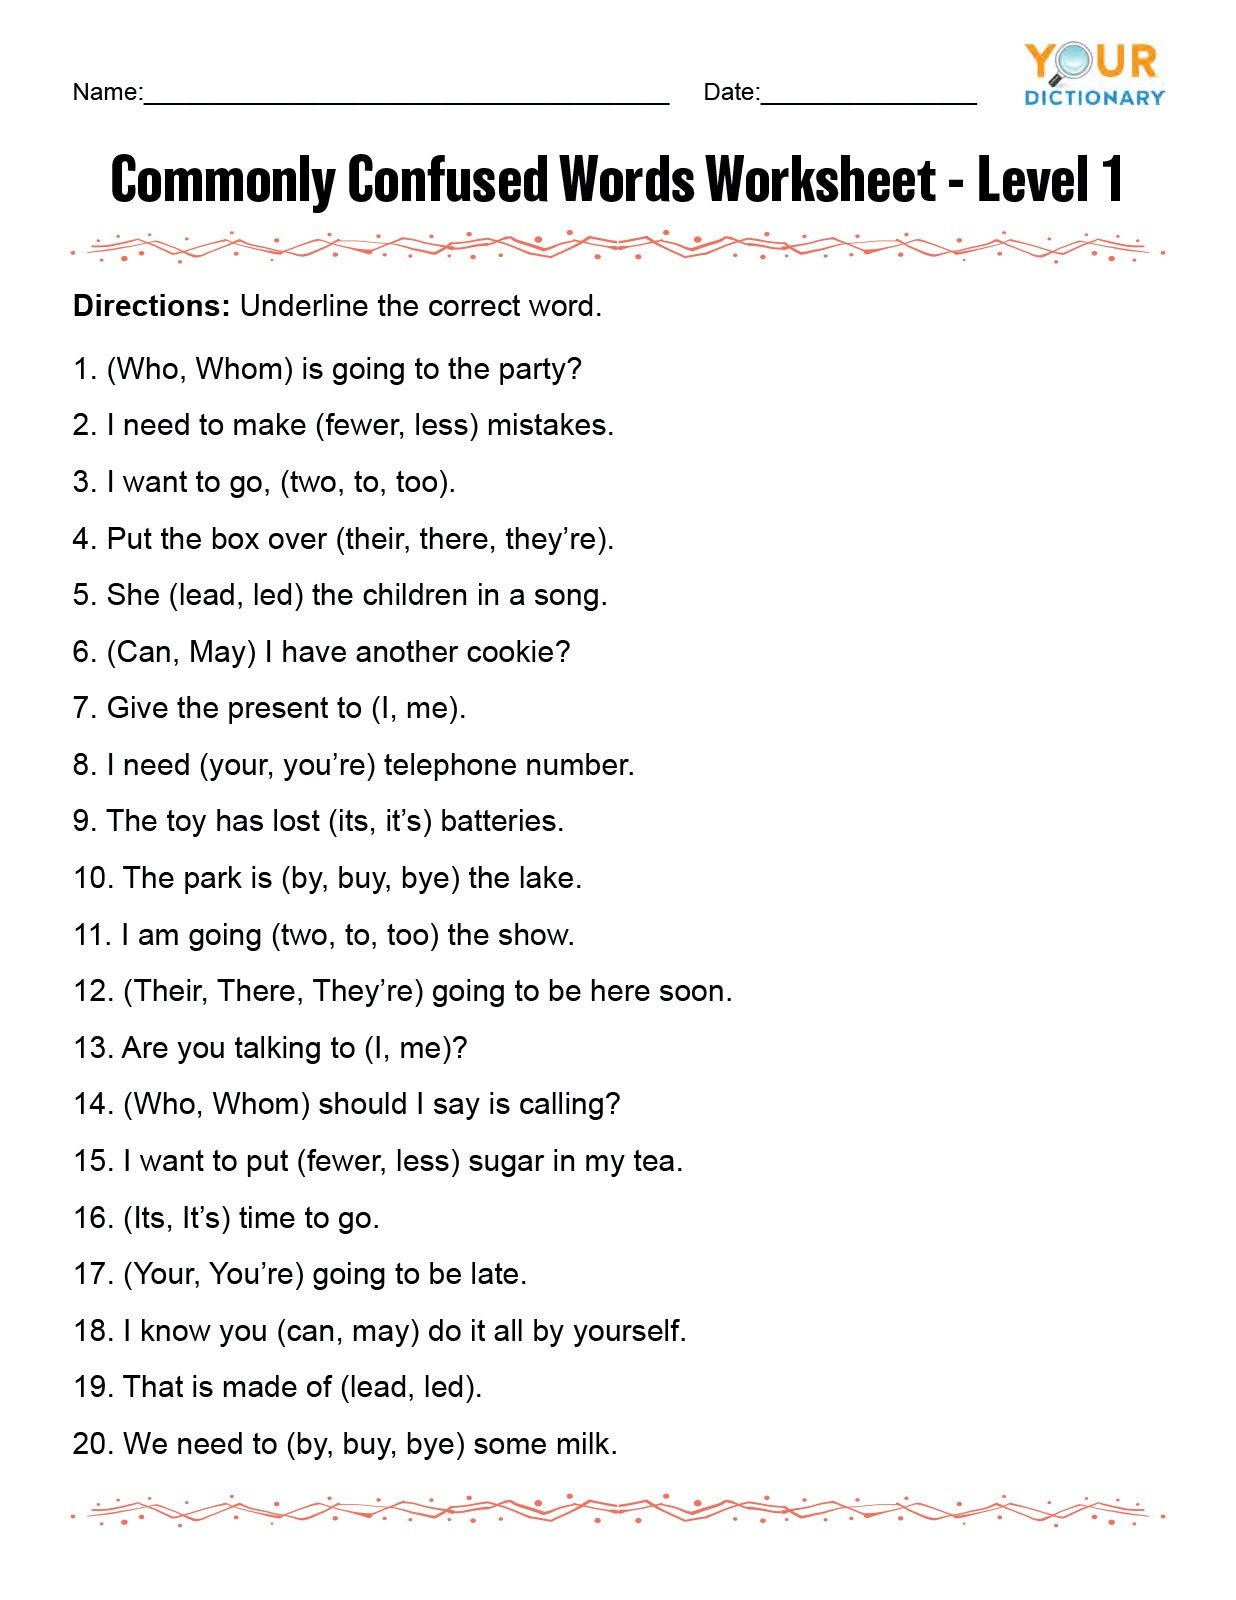 Grammar Worksheets High School Monly Confused Words Worksheet